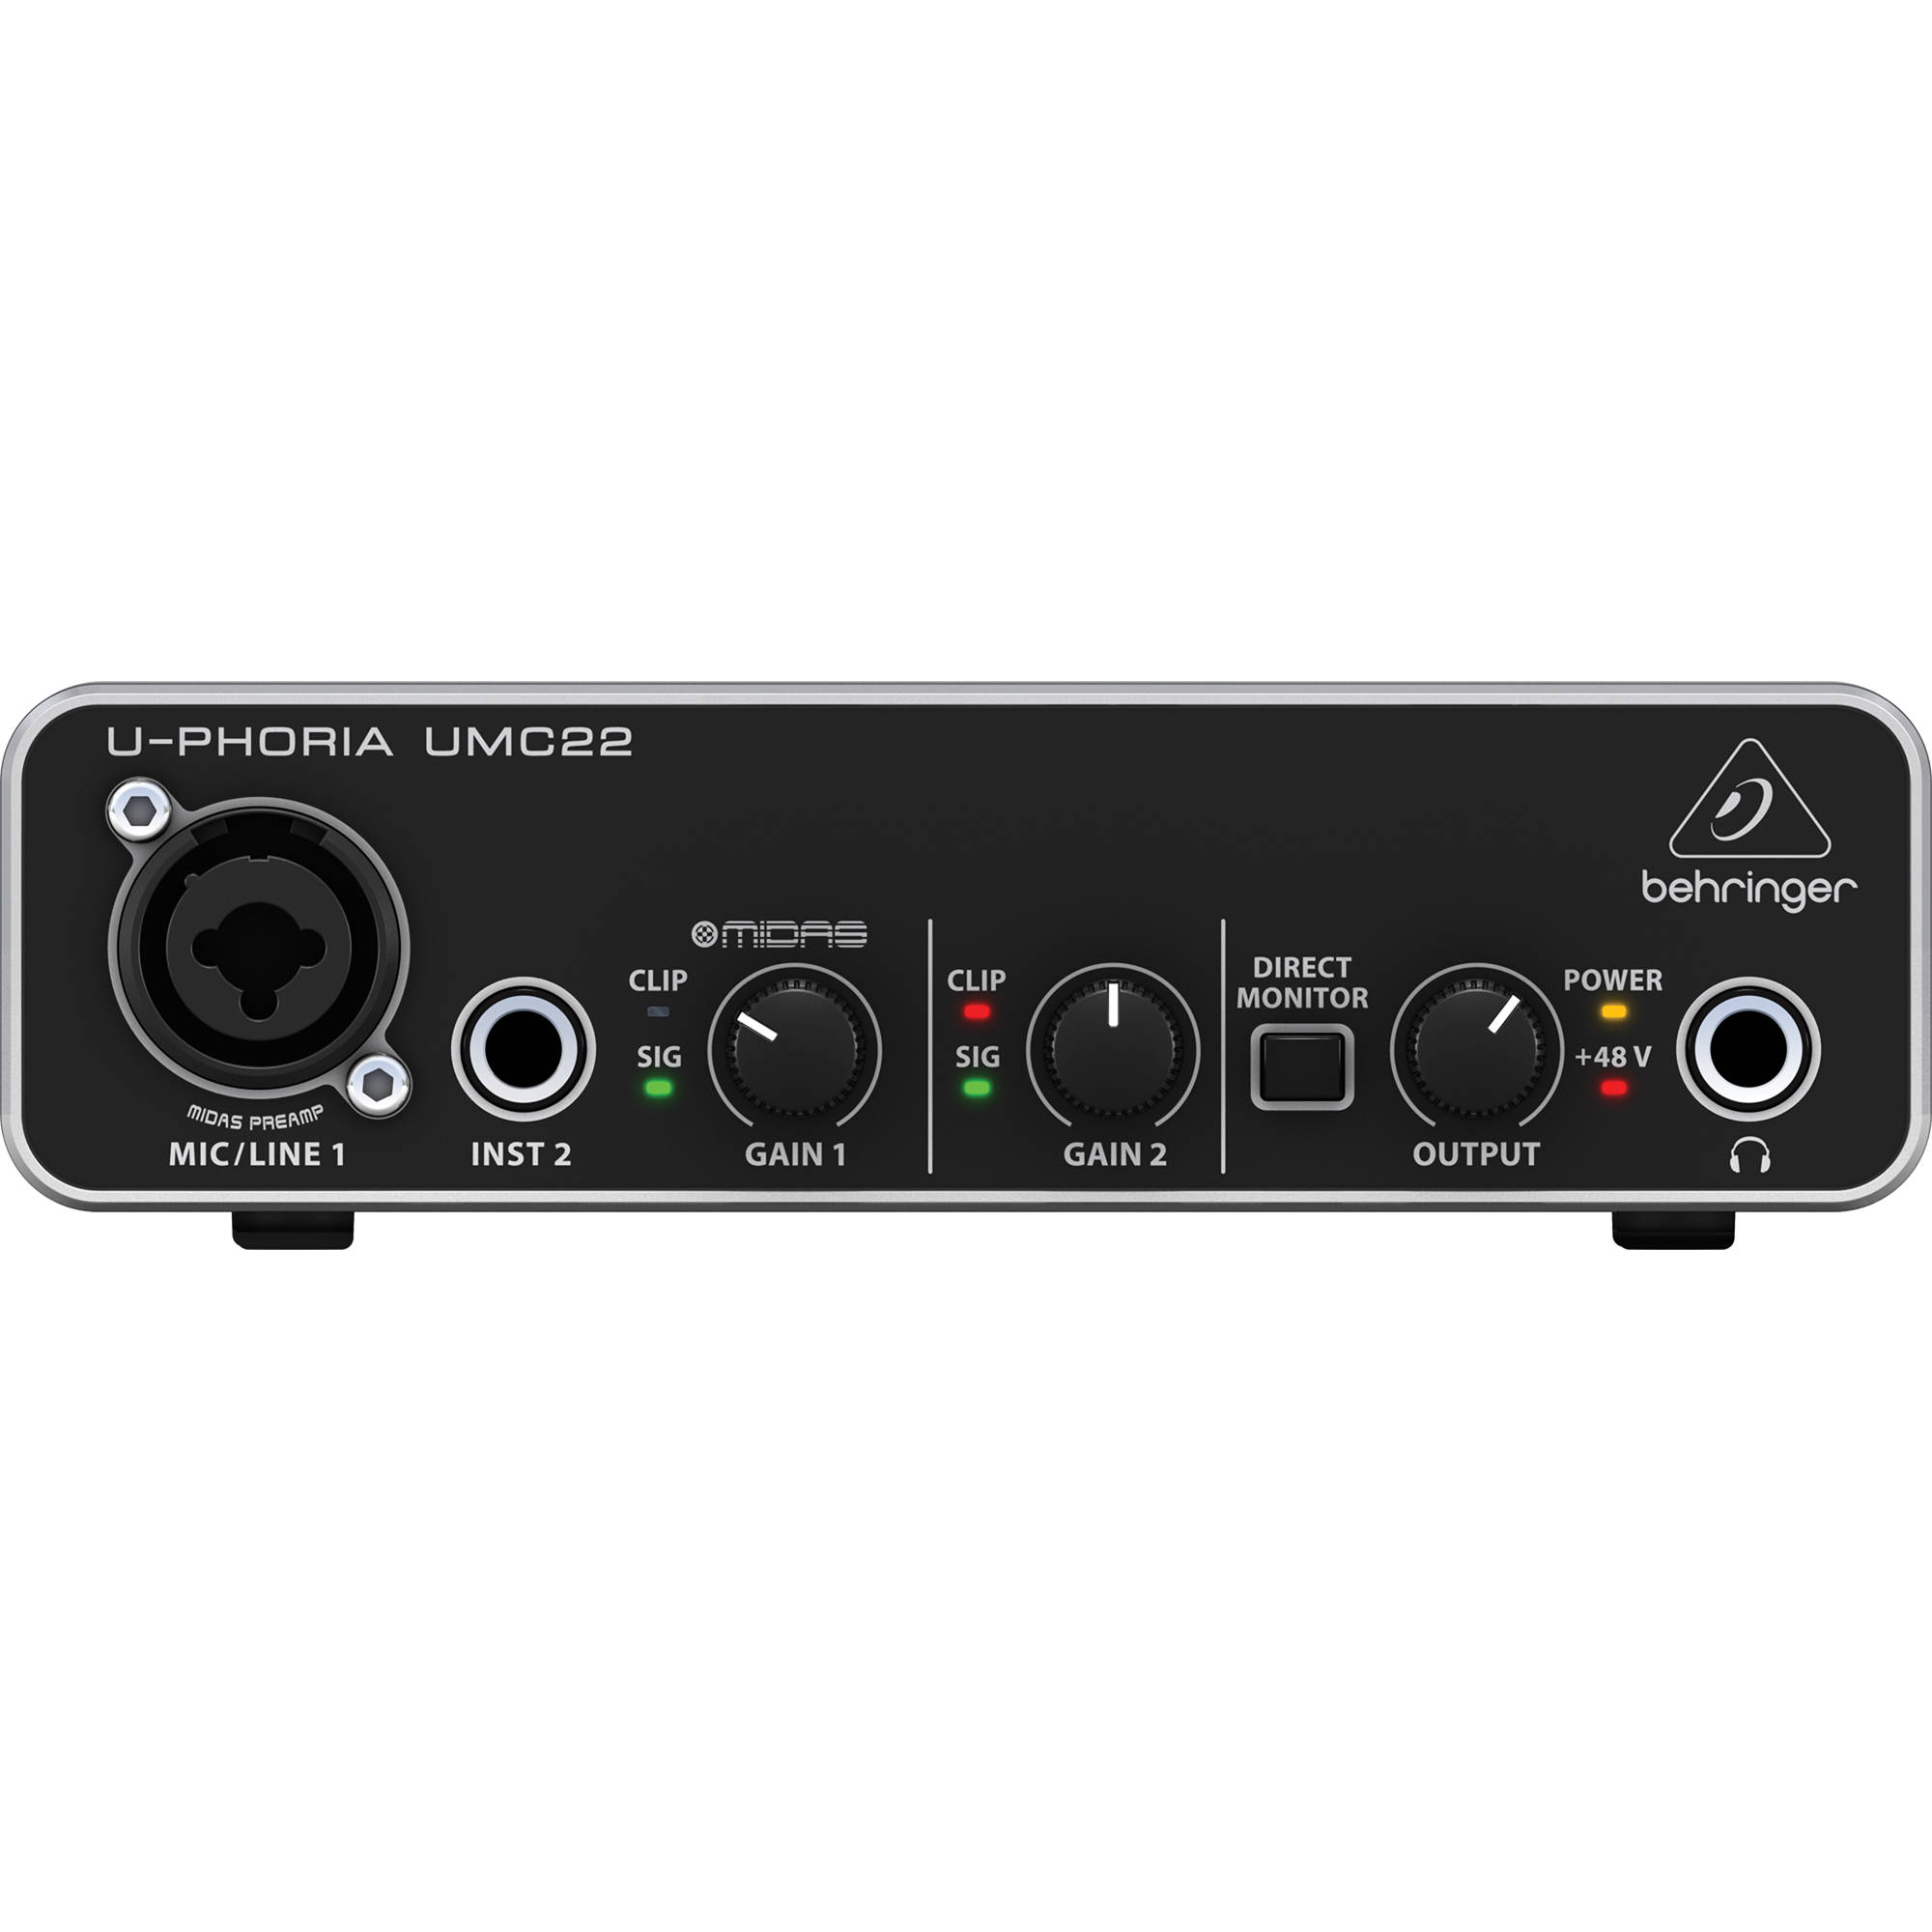 BEHRINGER ASIO USB WINDOWS 8 X64 DRIVER DOWNLOAD